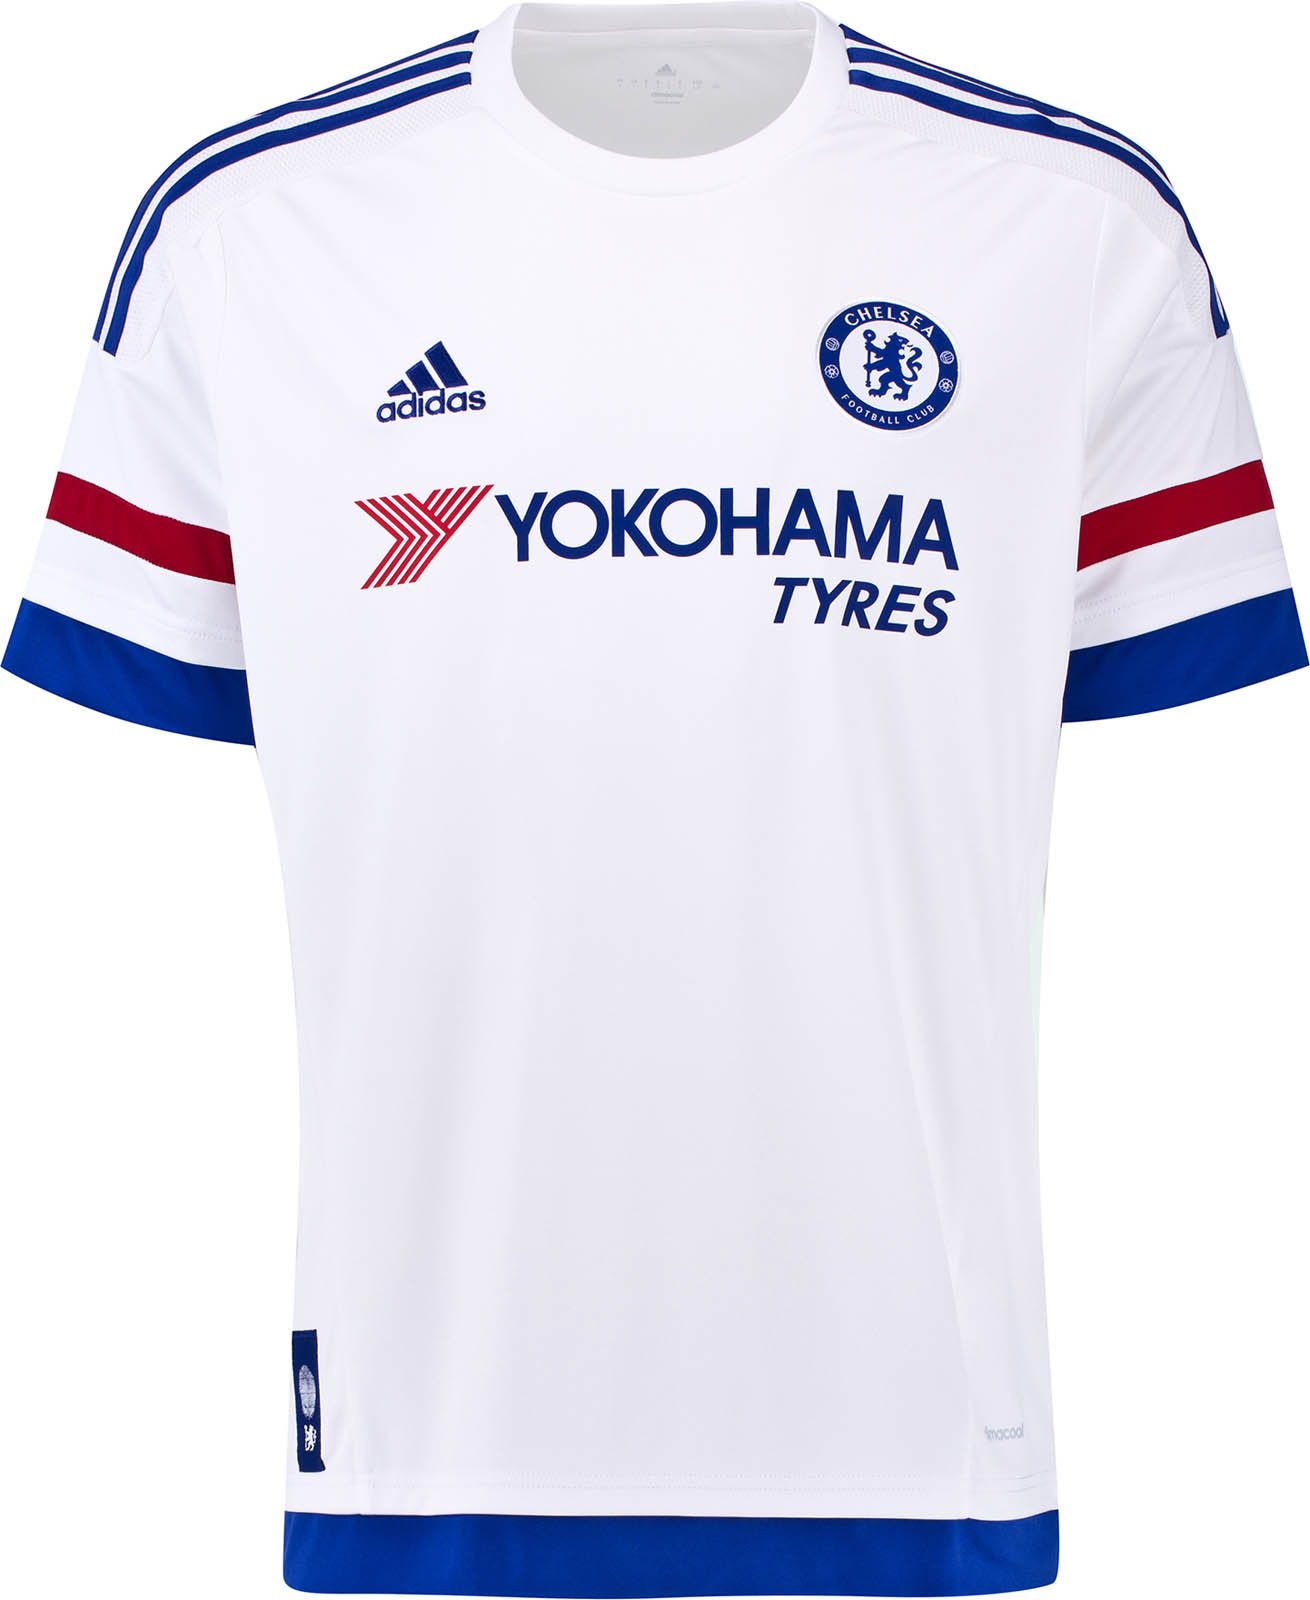 camiseta adidas chelsea photo 8bec711037bac